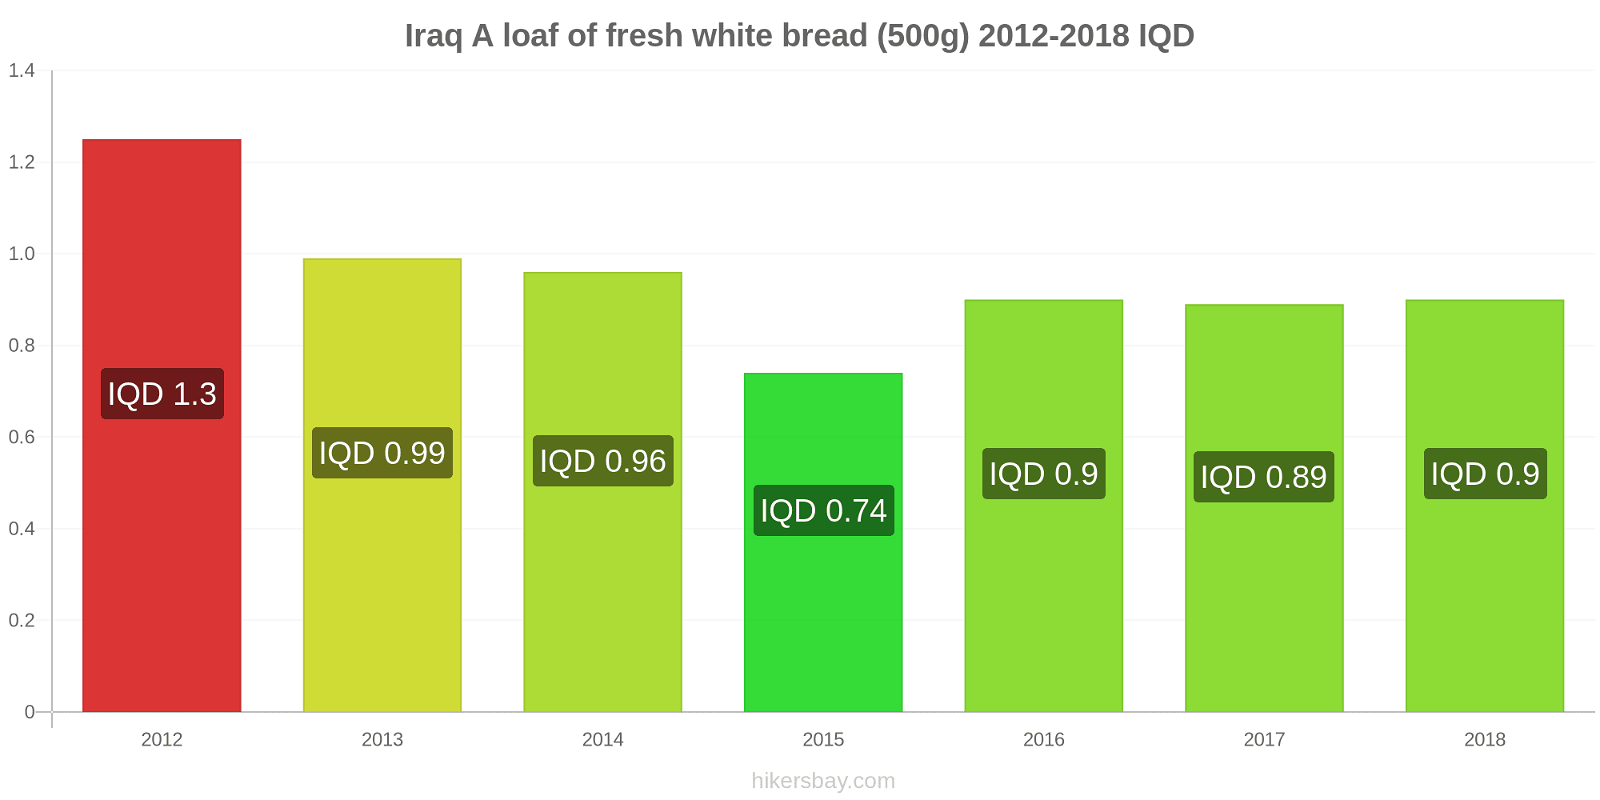 Iraq price changes A loaf of fresh white bread (500g) hikersbay.com